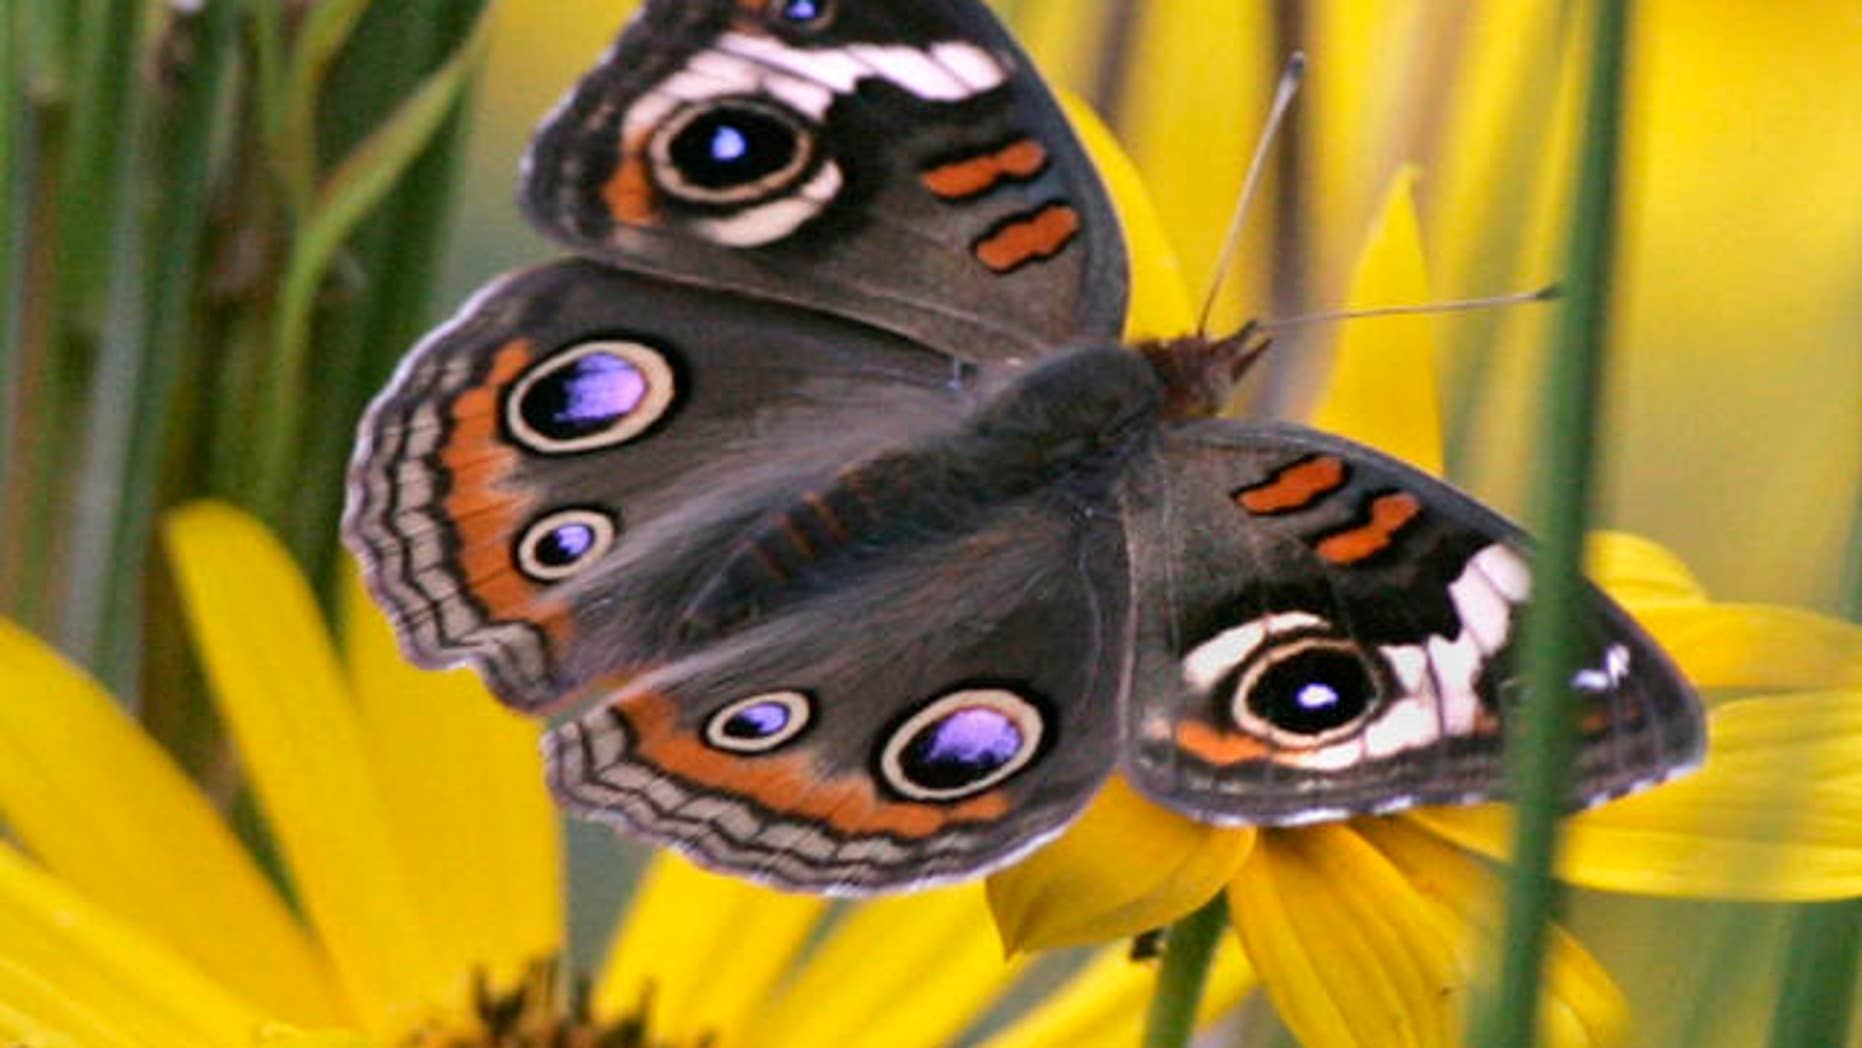 Oct. 10, 2007: A buckeye butterfly rests among the wild flowers as he feeds on the plant's nectar, in Hosford, Fla.